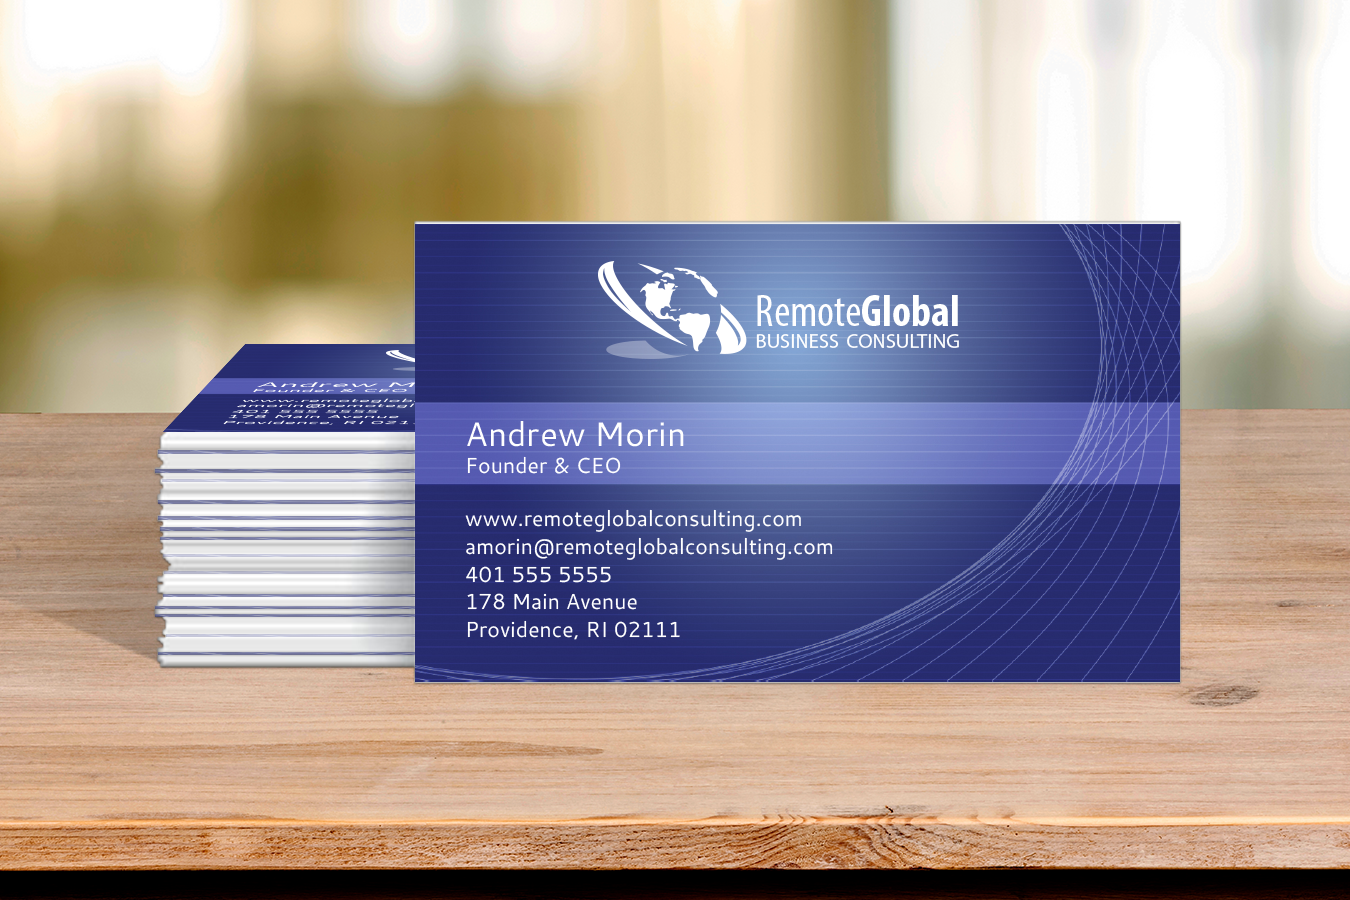 Business Cards Why They're Still Critical for Small